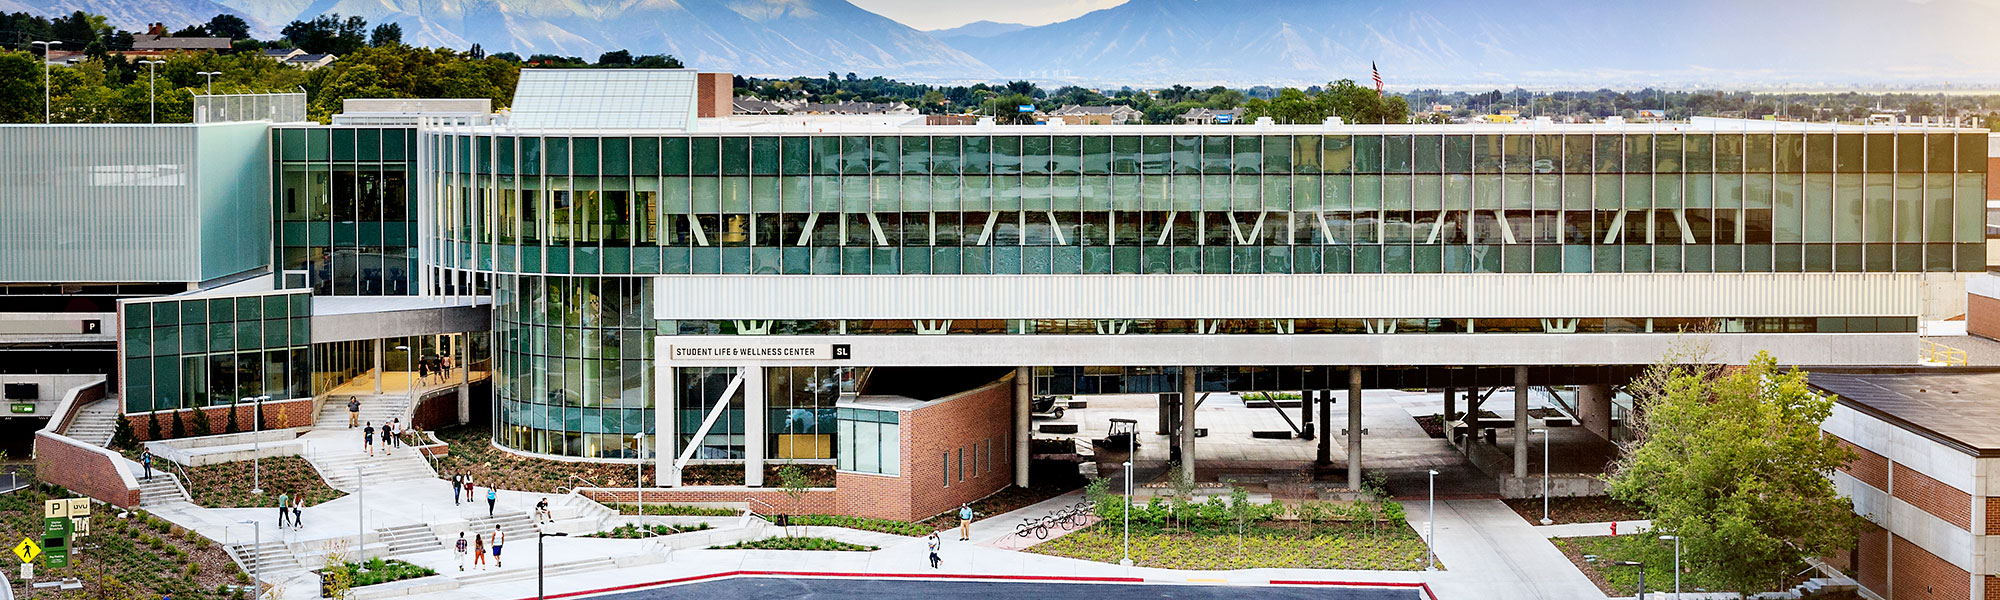 Student Life and Wellness Center | Campus Recreation | Utah